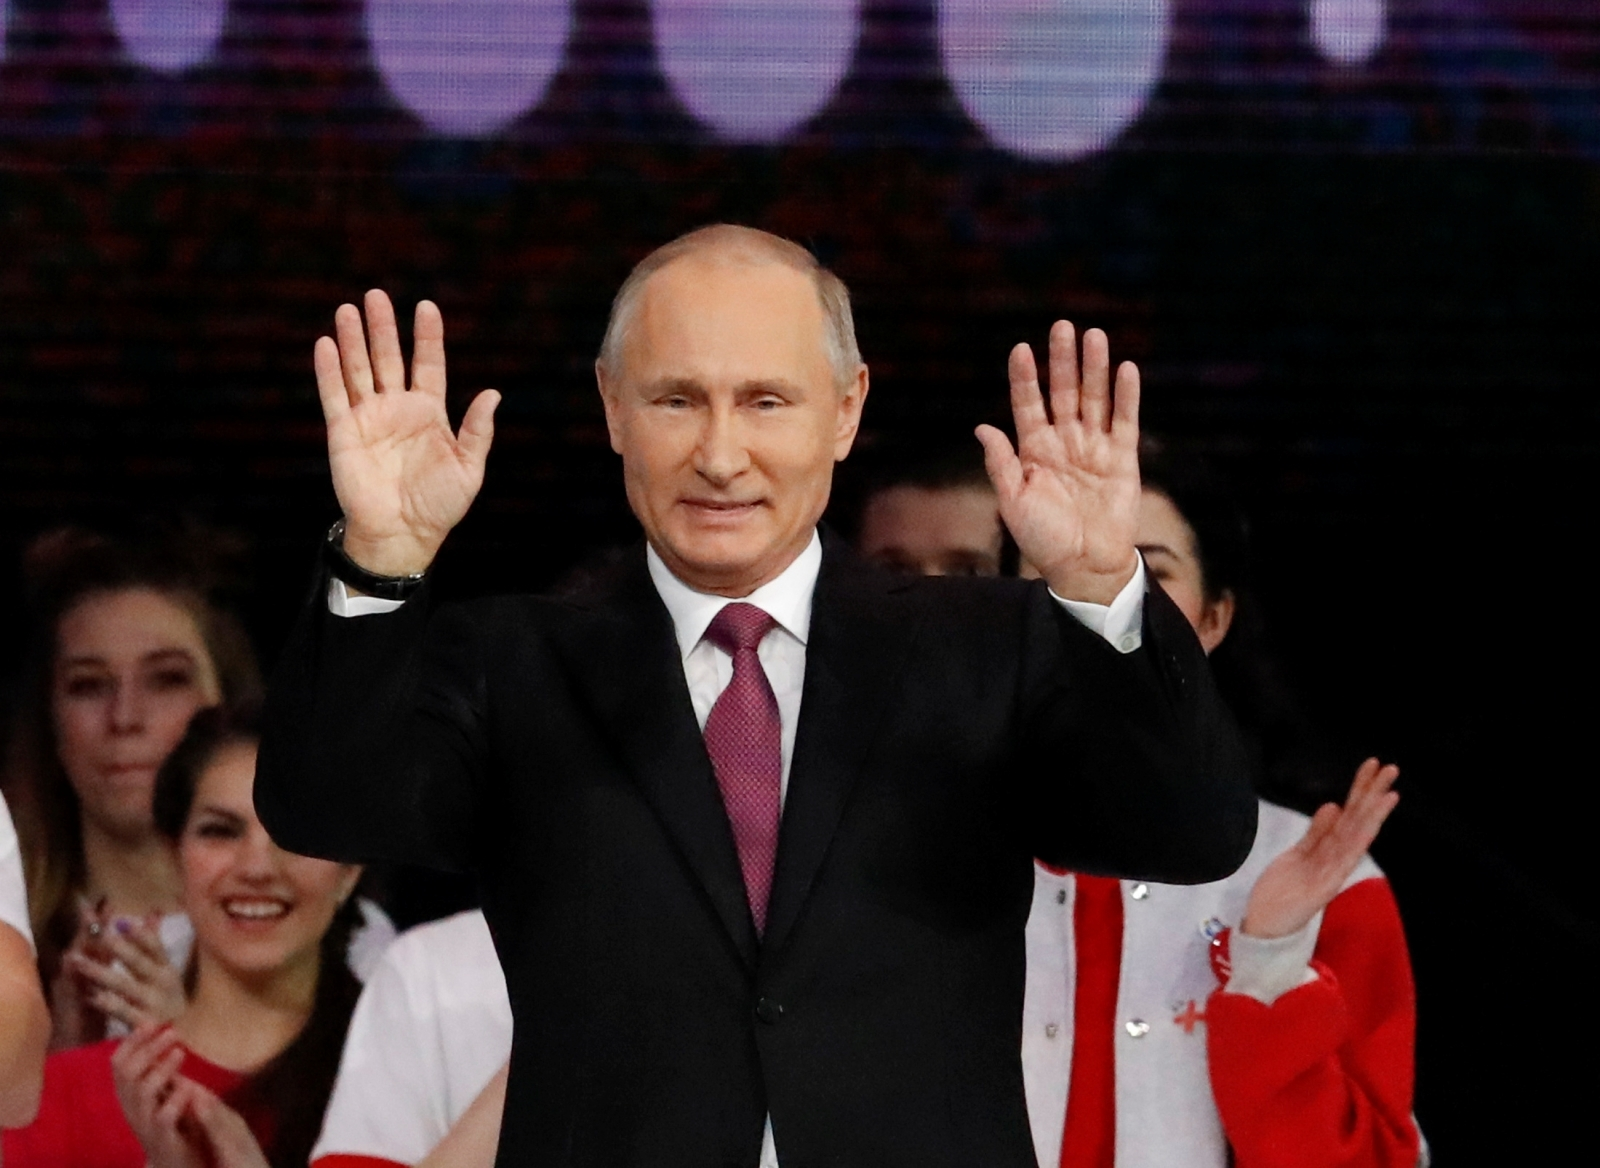 Vladimir Putin makes it official - he's running for re-election in 2018